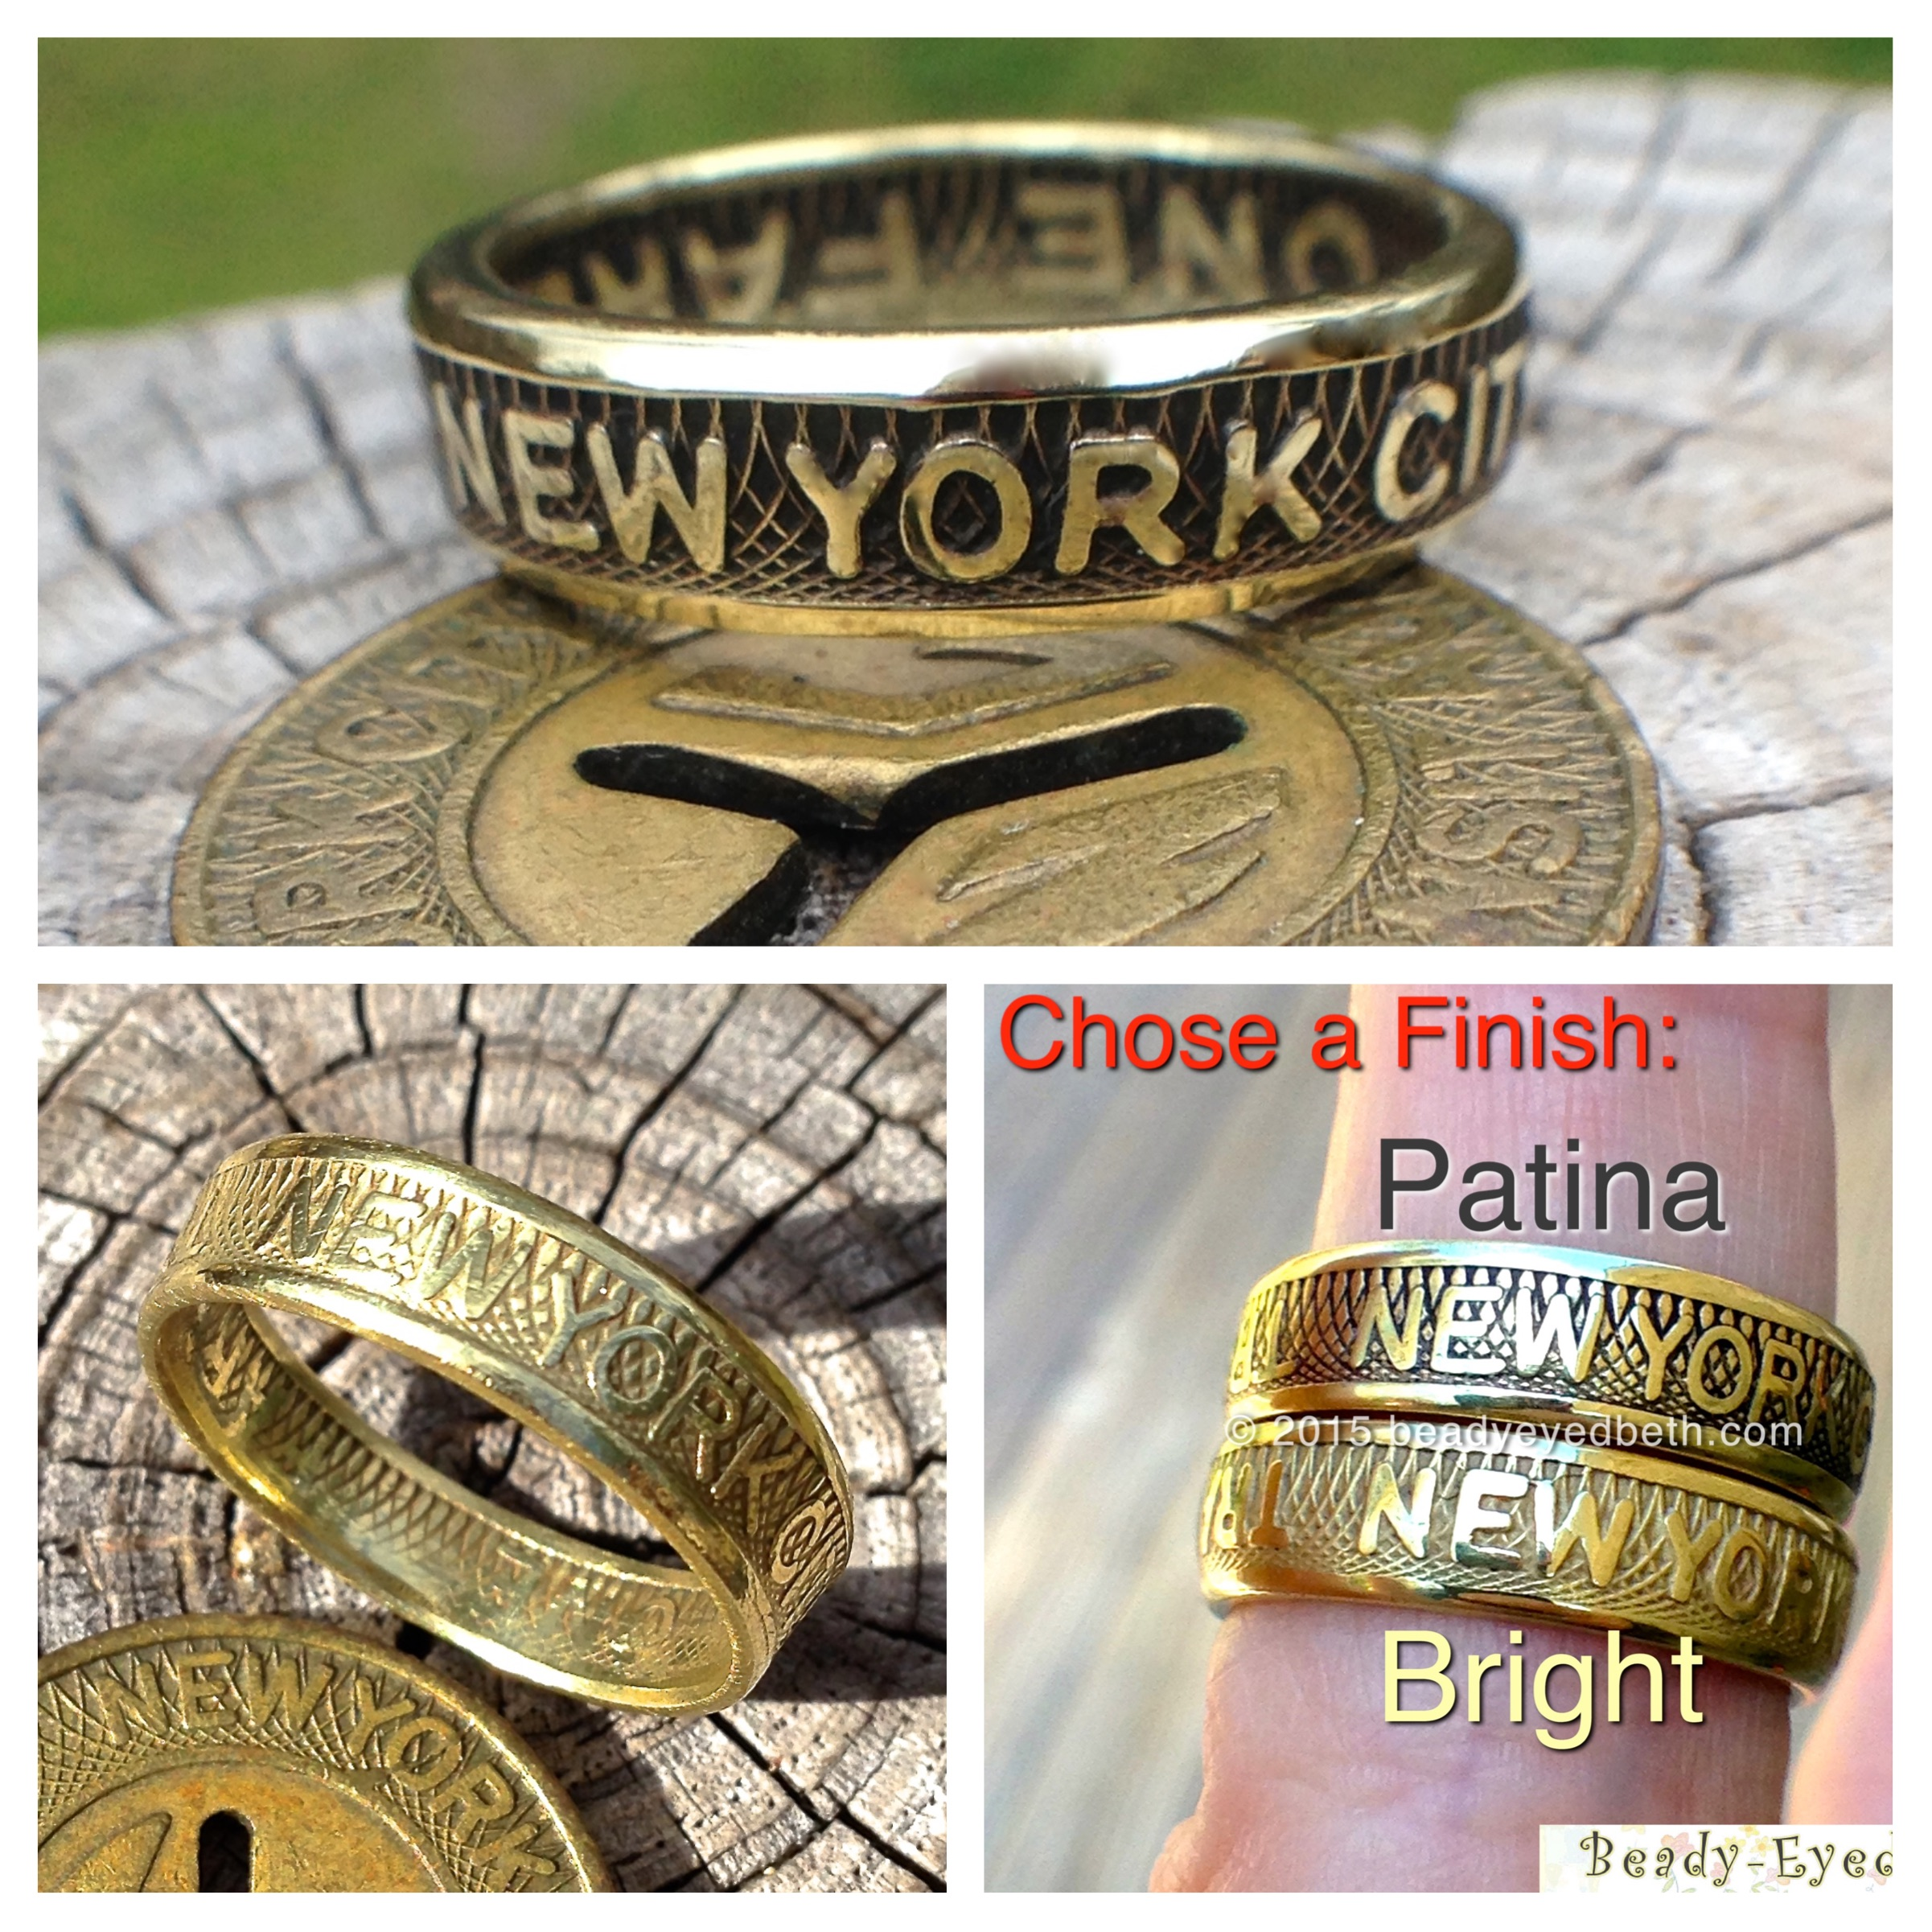 New York City Subway Token Ring - US Shipping Included in Price